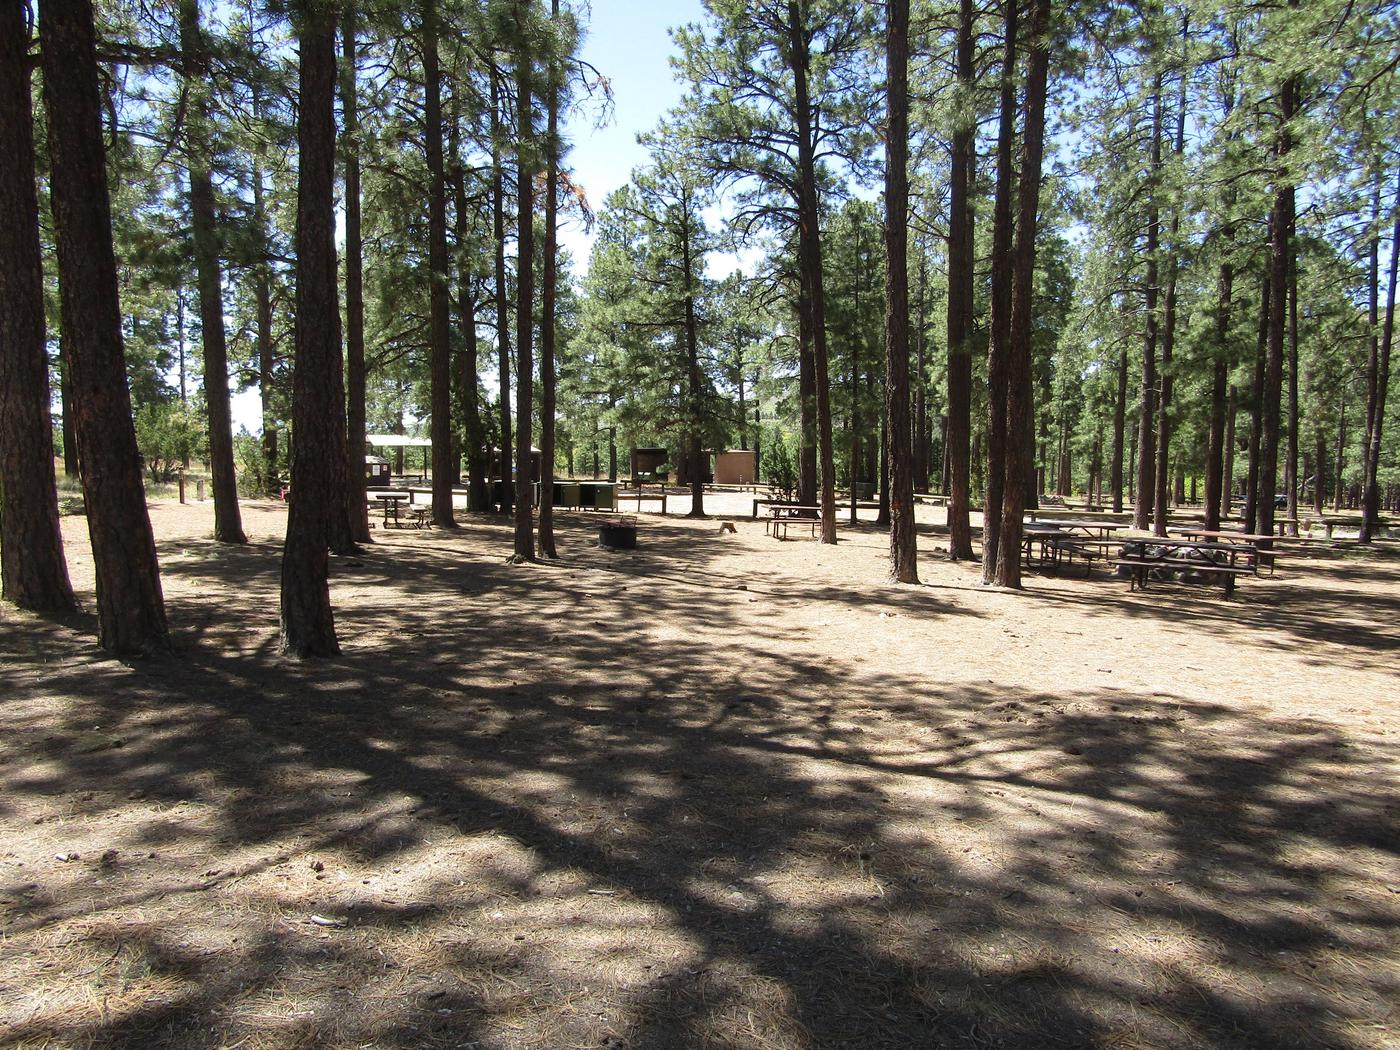 Picnic tables among pine treesPonderosa Group Campground sits among ponderosa pines which provide shade for group campers. Campsites can accommodate 10-50 campers each.